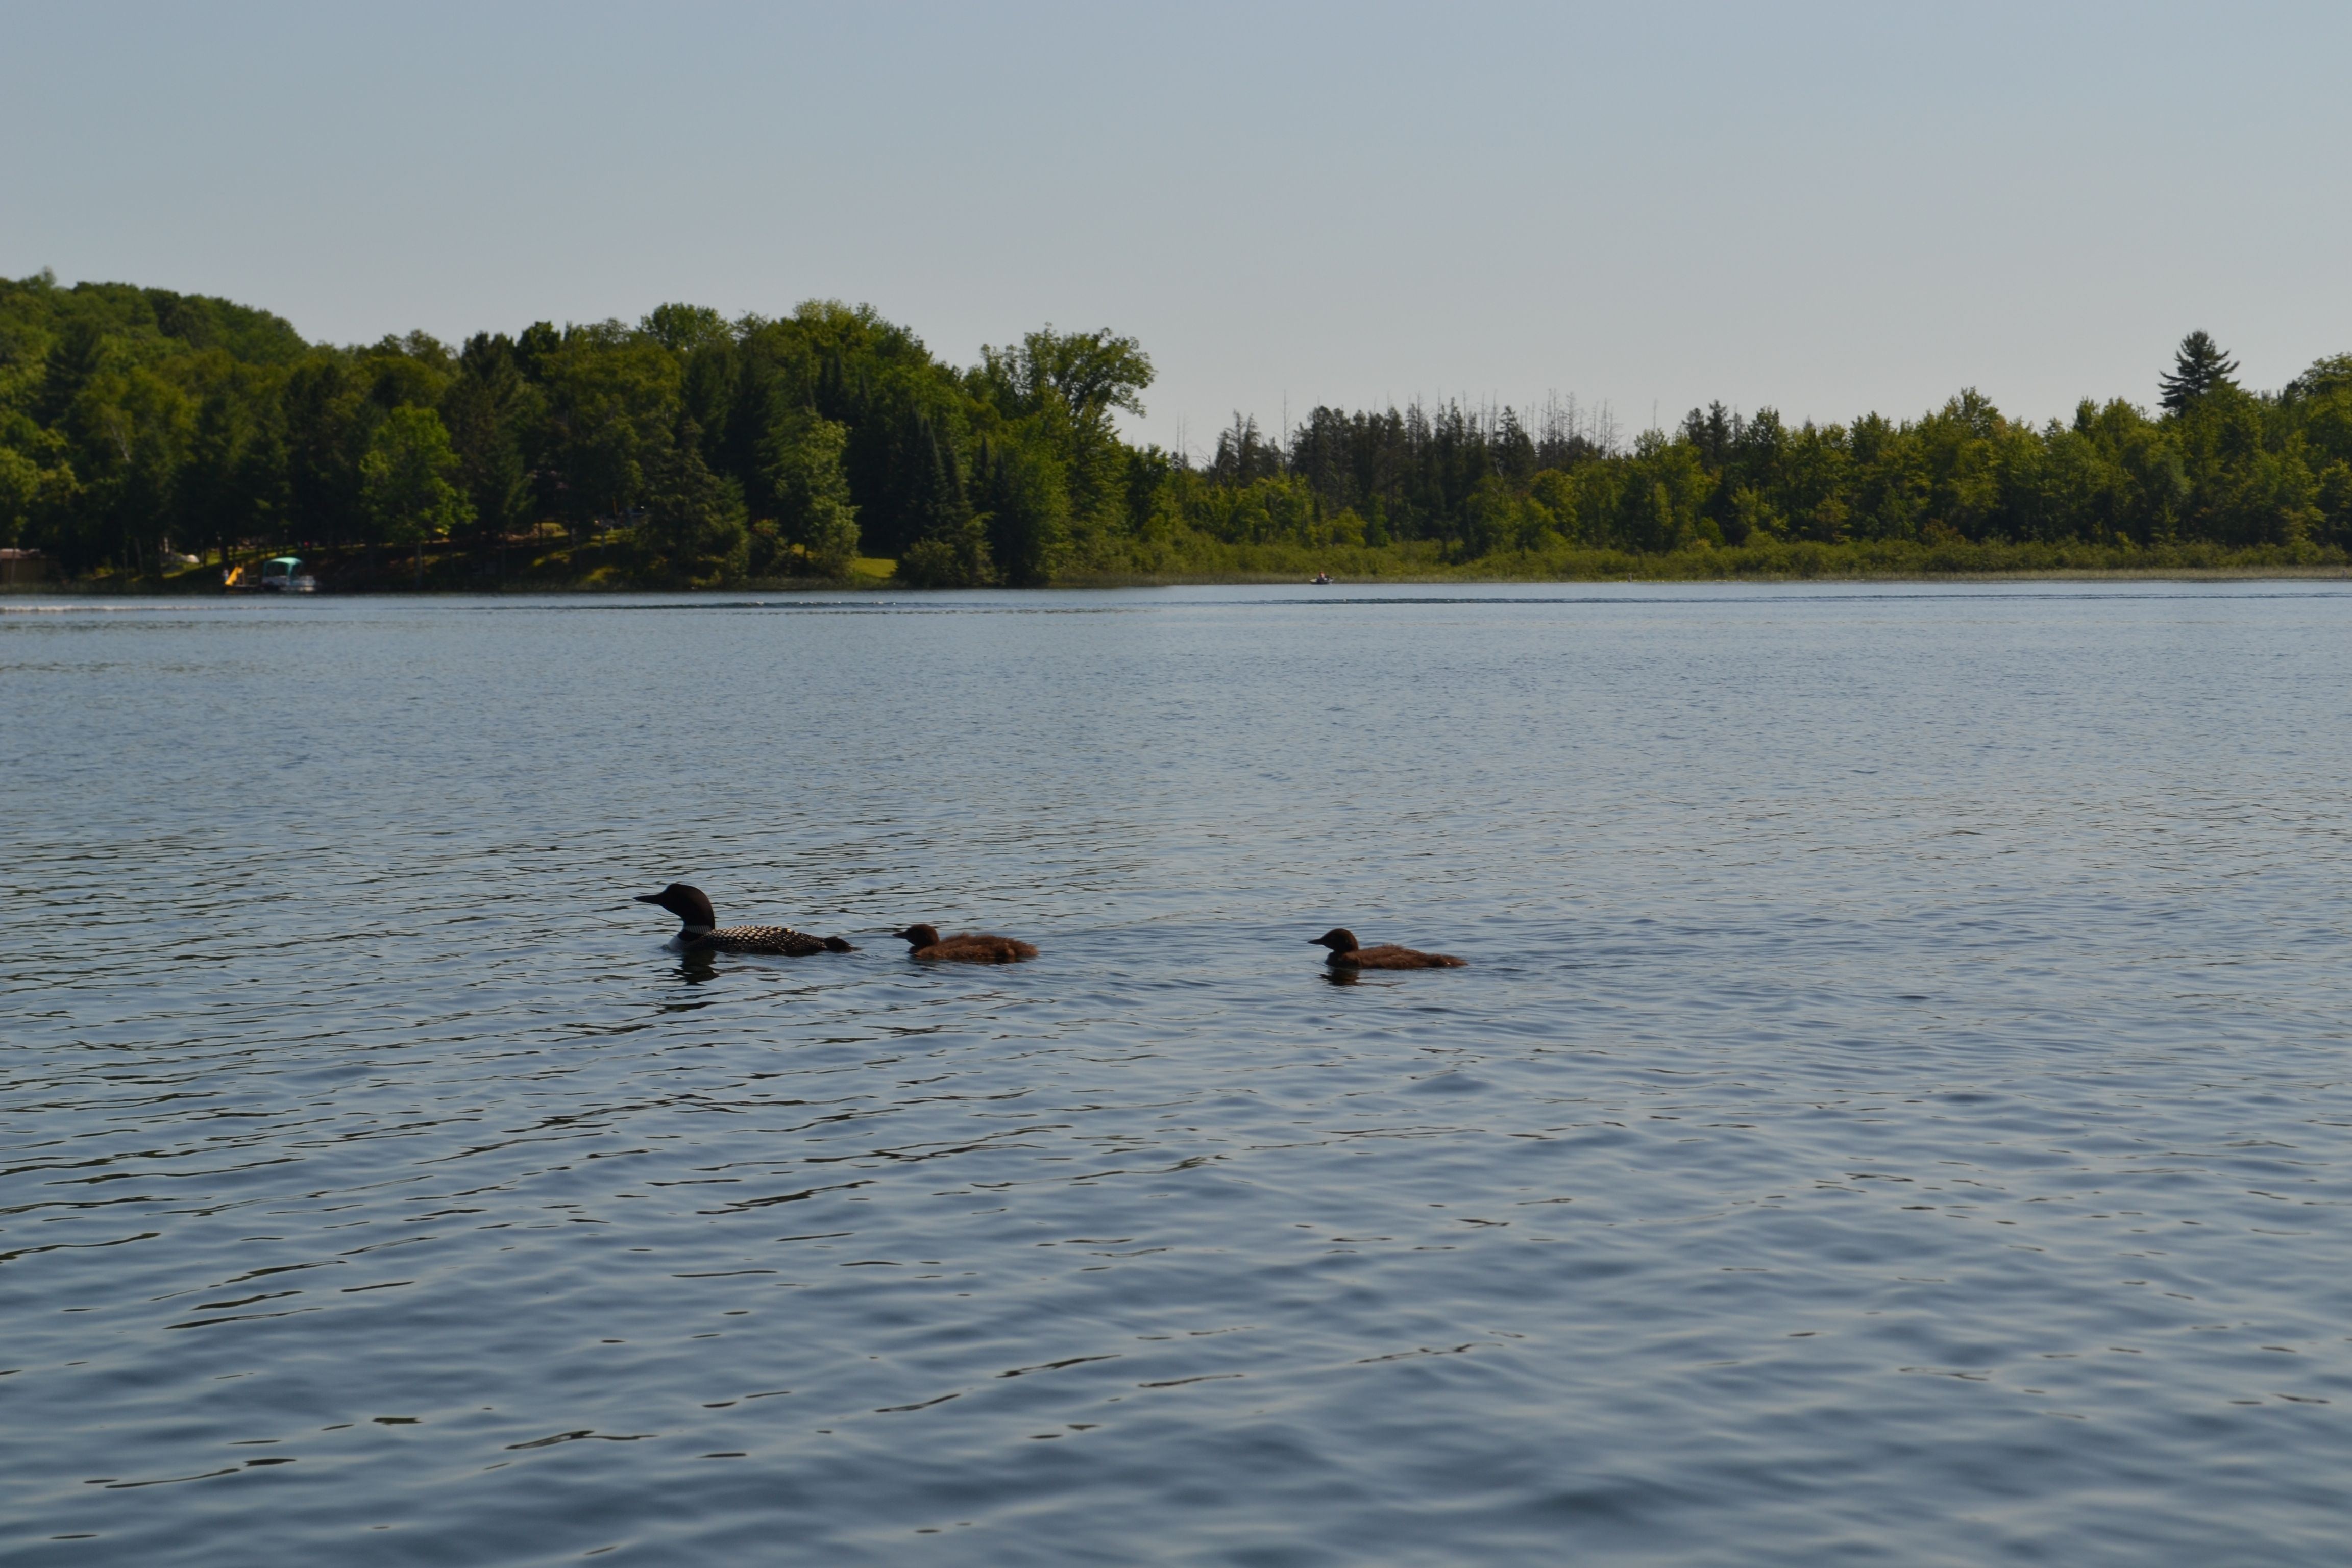 Common loon family in northern Wisconsin.